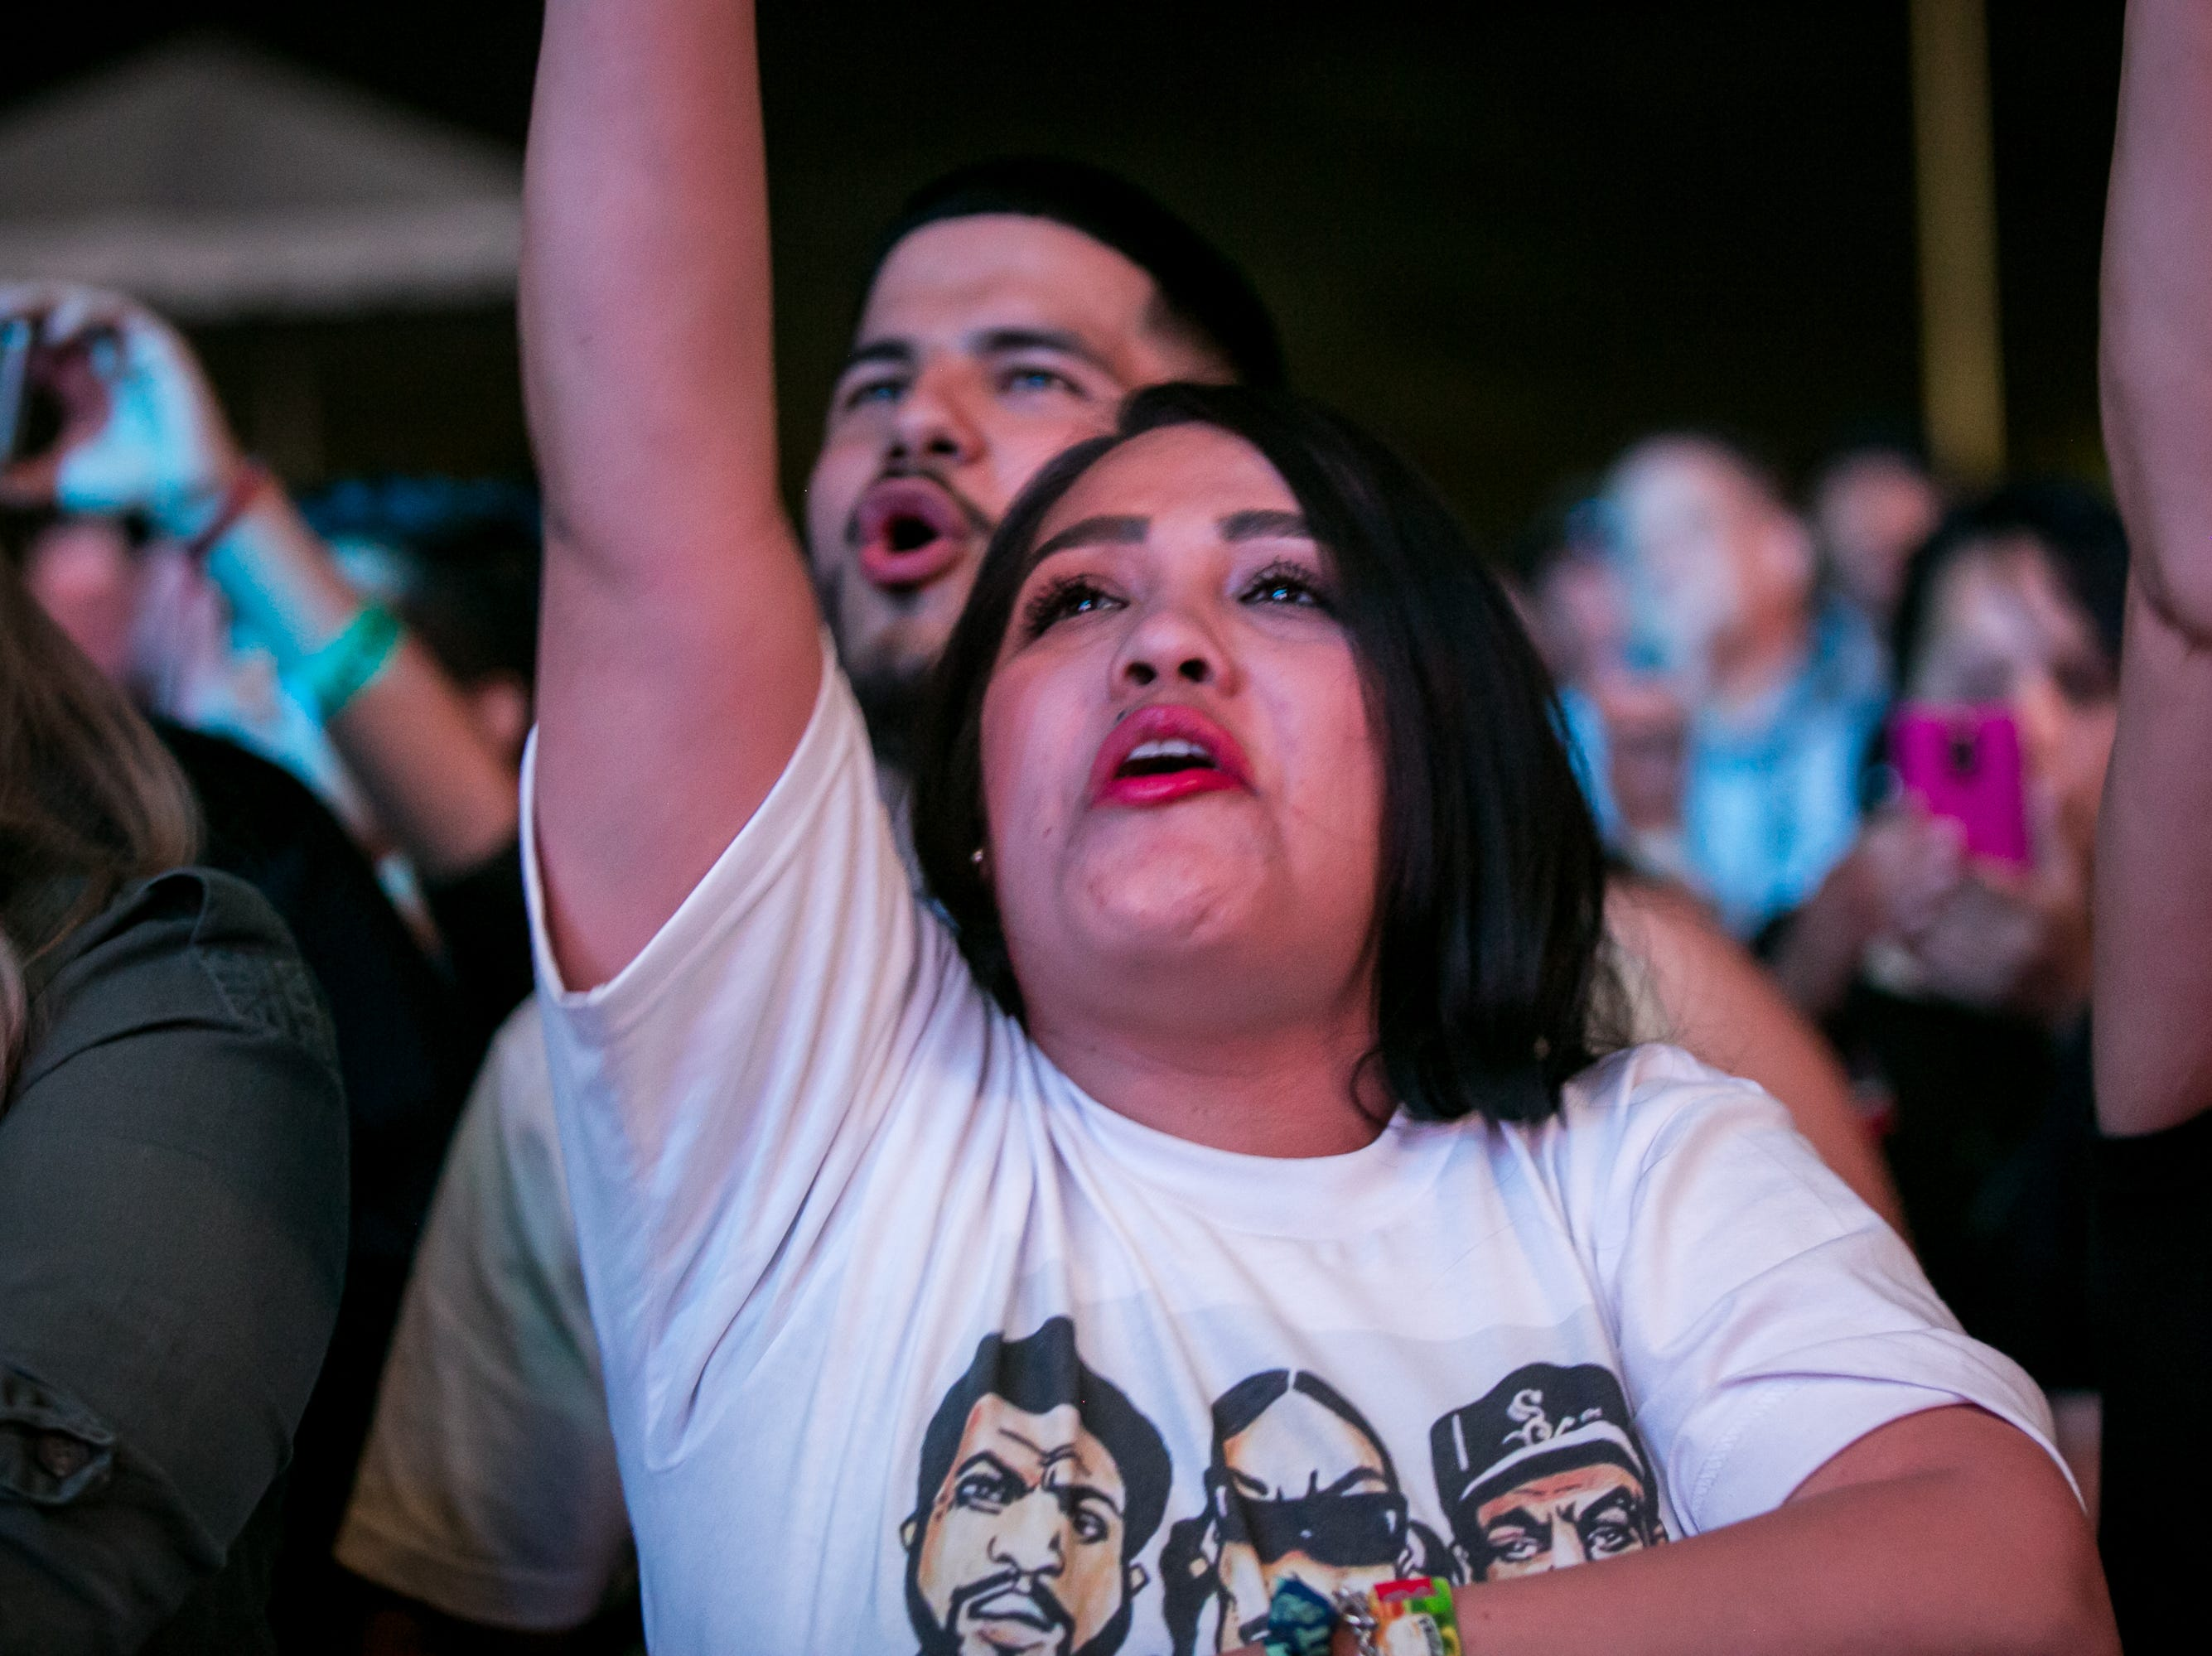 A fan cheered at Pot of Gold Music Festival at Steele Indian School Park on Friday, March 15, 2019.